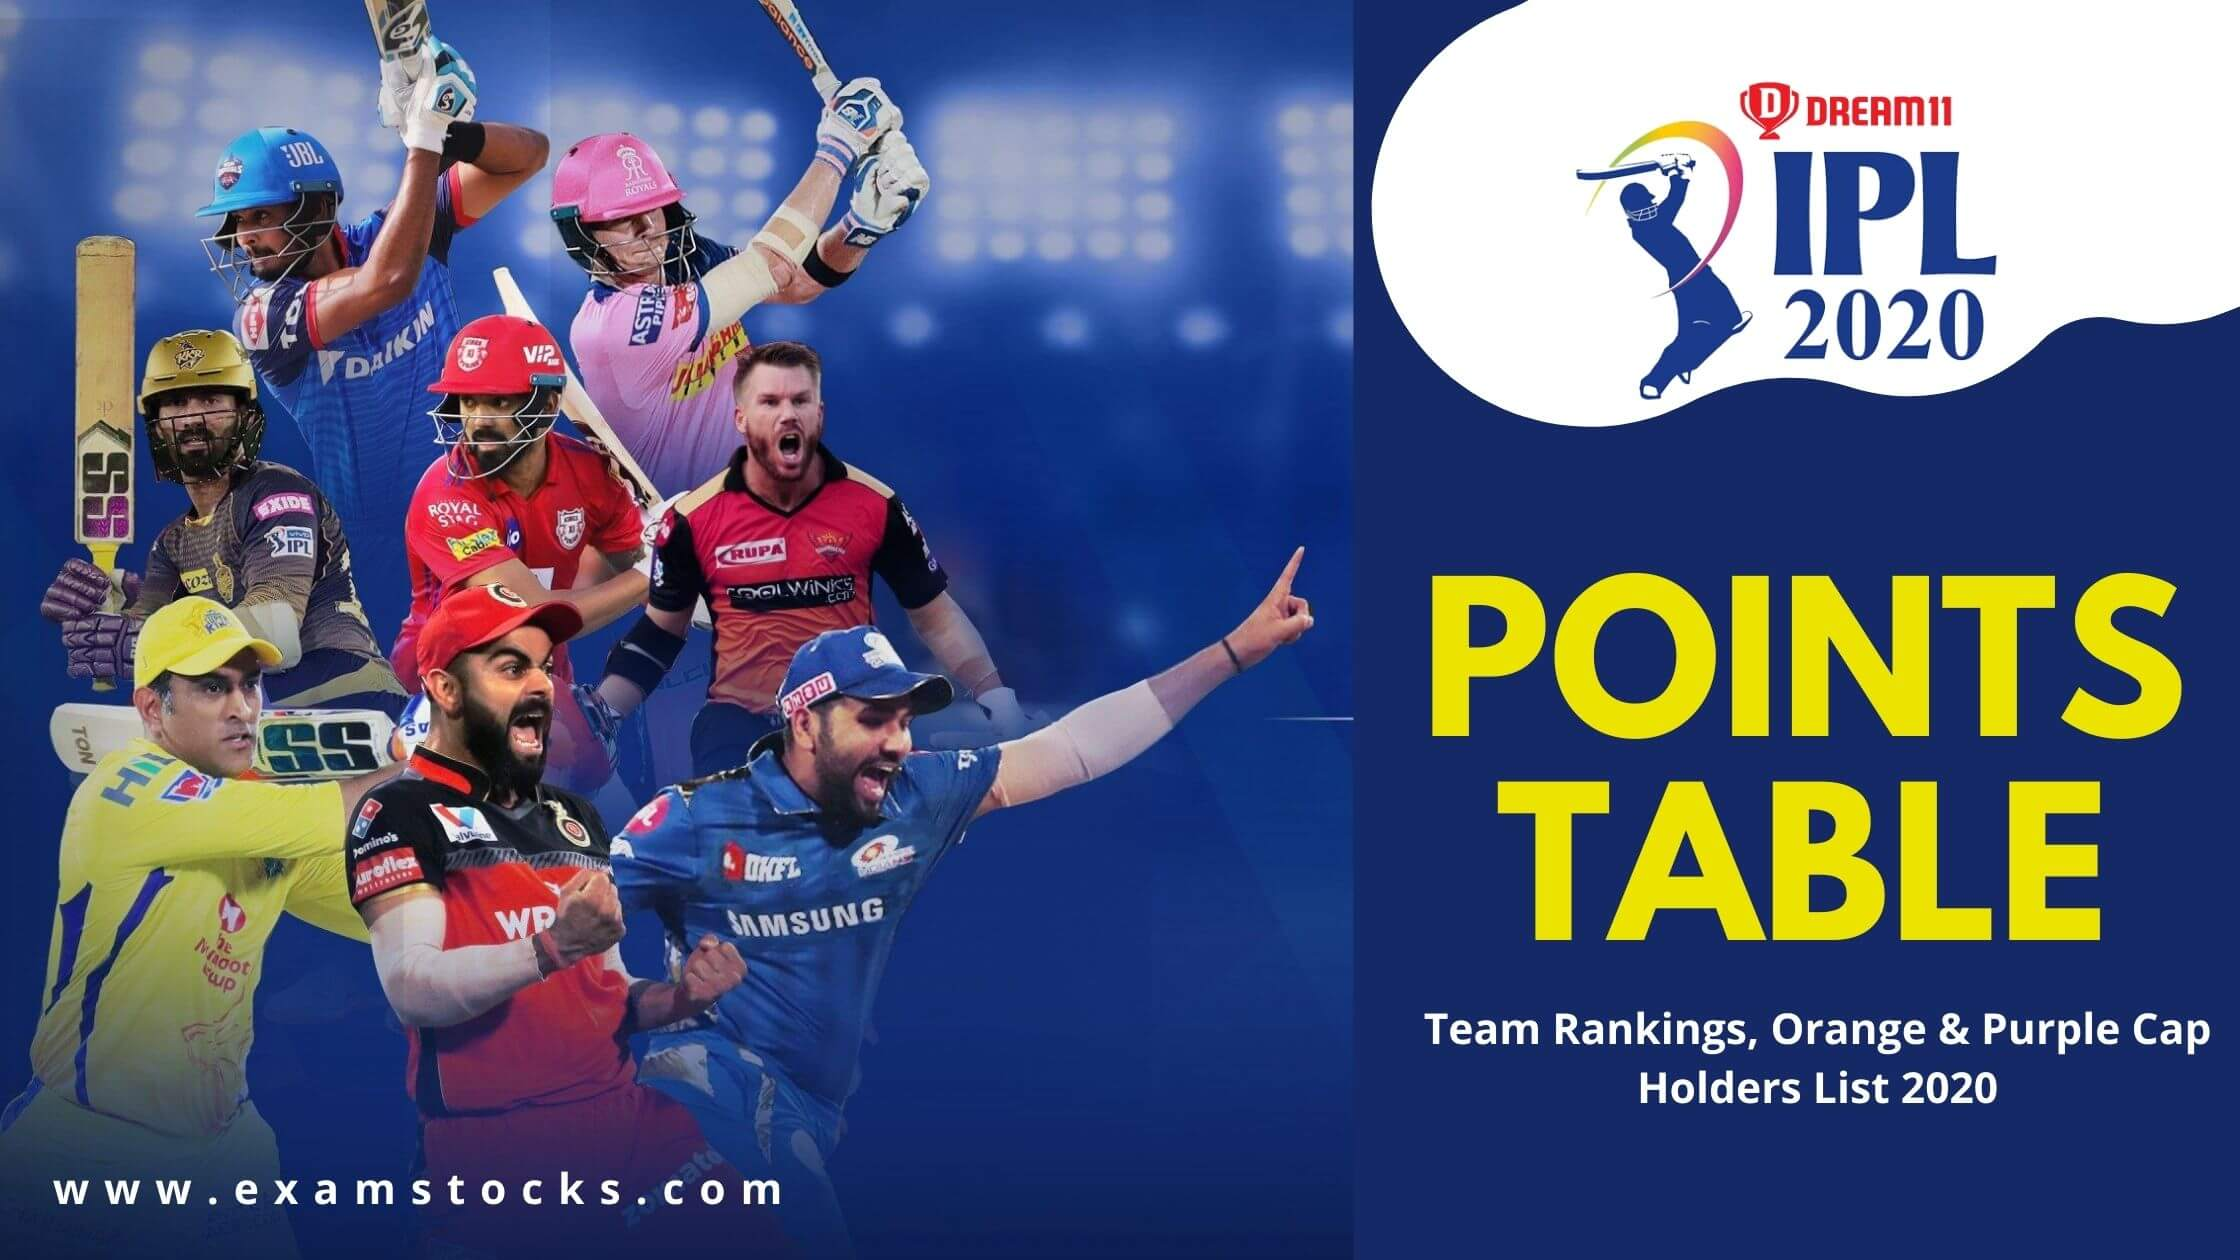 IPL 2020 Points Table Team Rankings Orange & Purple Cap List